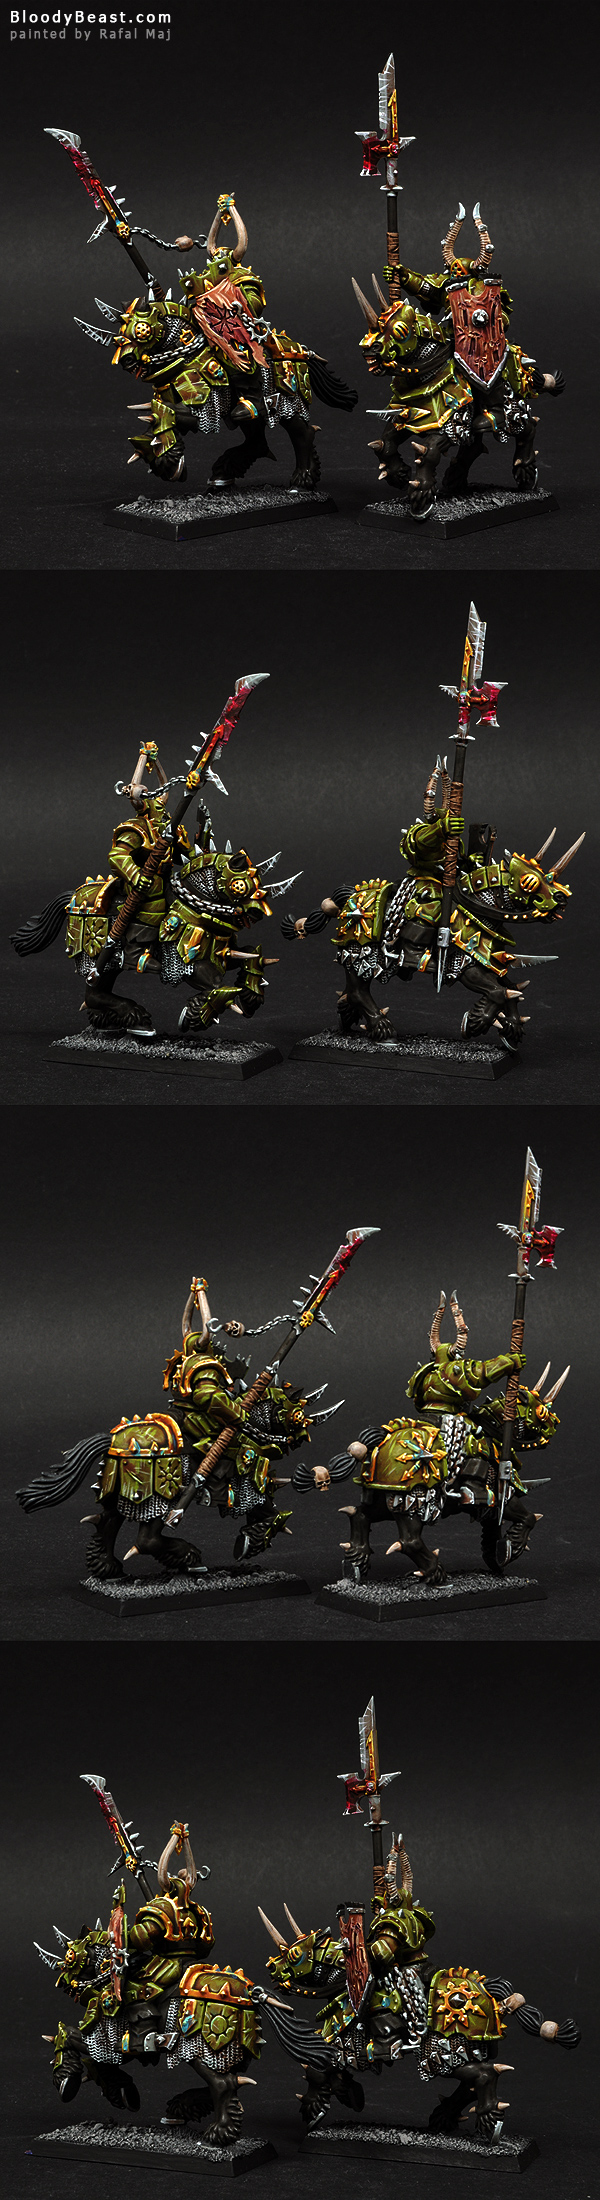 Nurgle Knights with Lances painted by Rafal Maj (BloodyBeast.com)